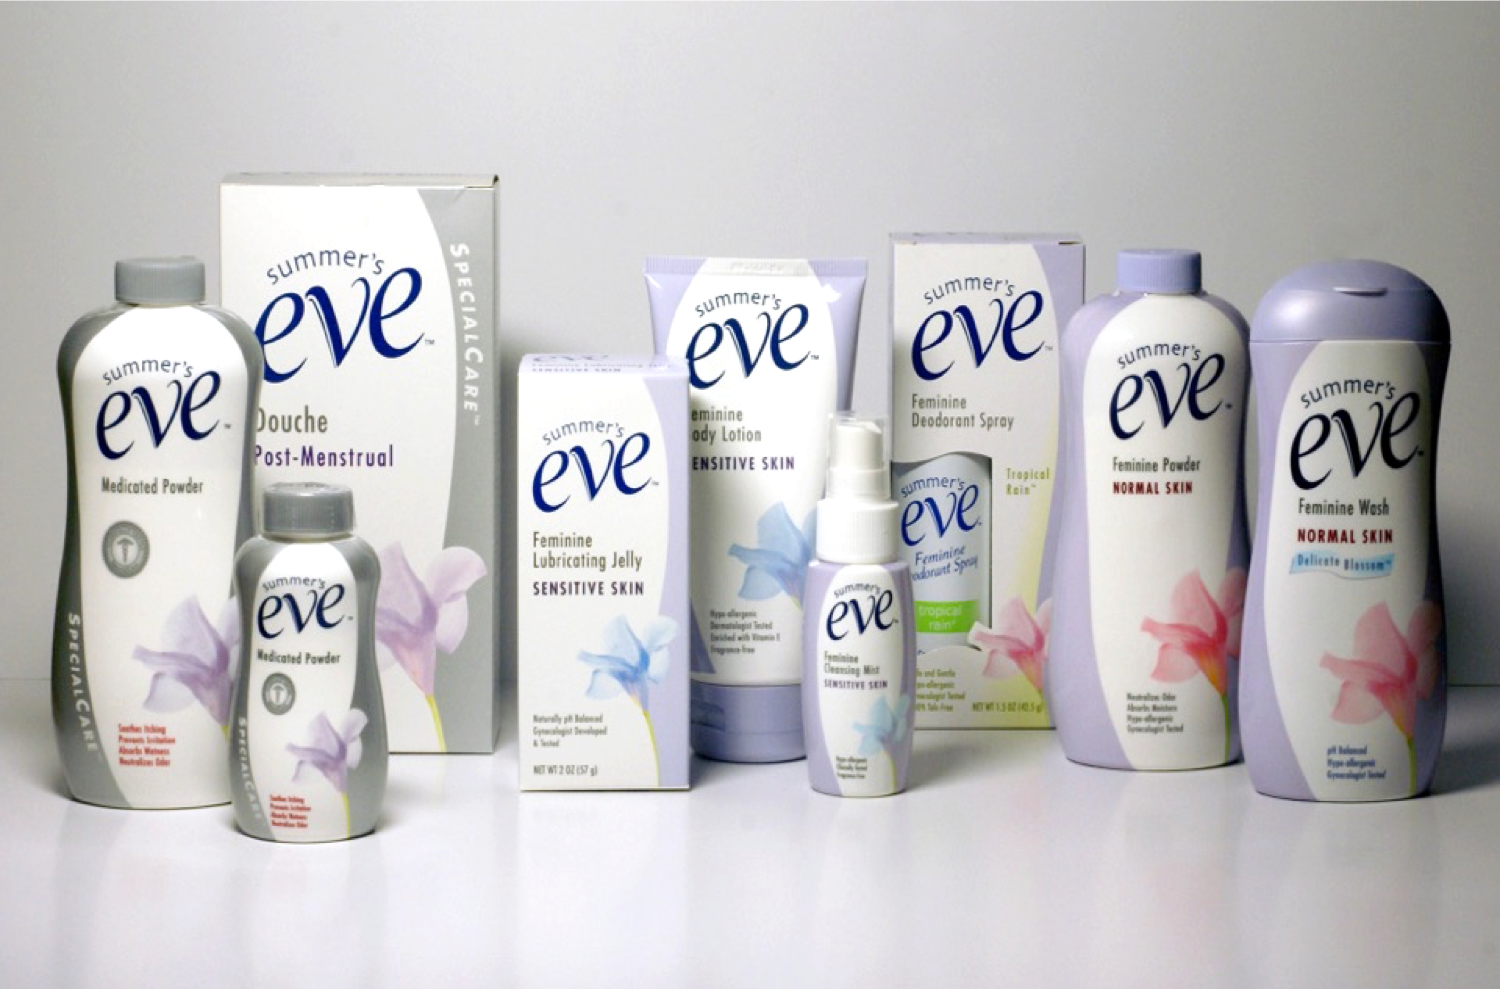 summers eve packaging design boxes